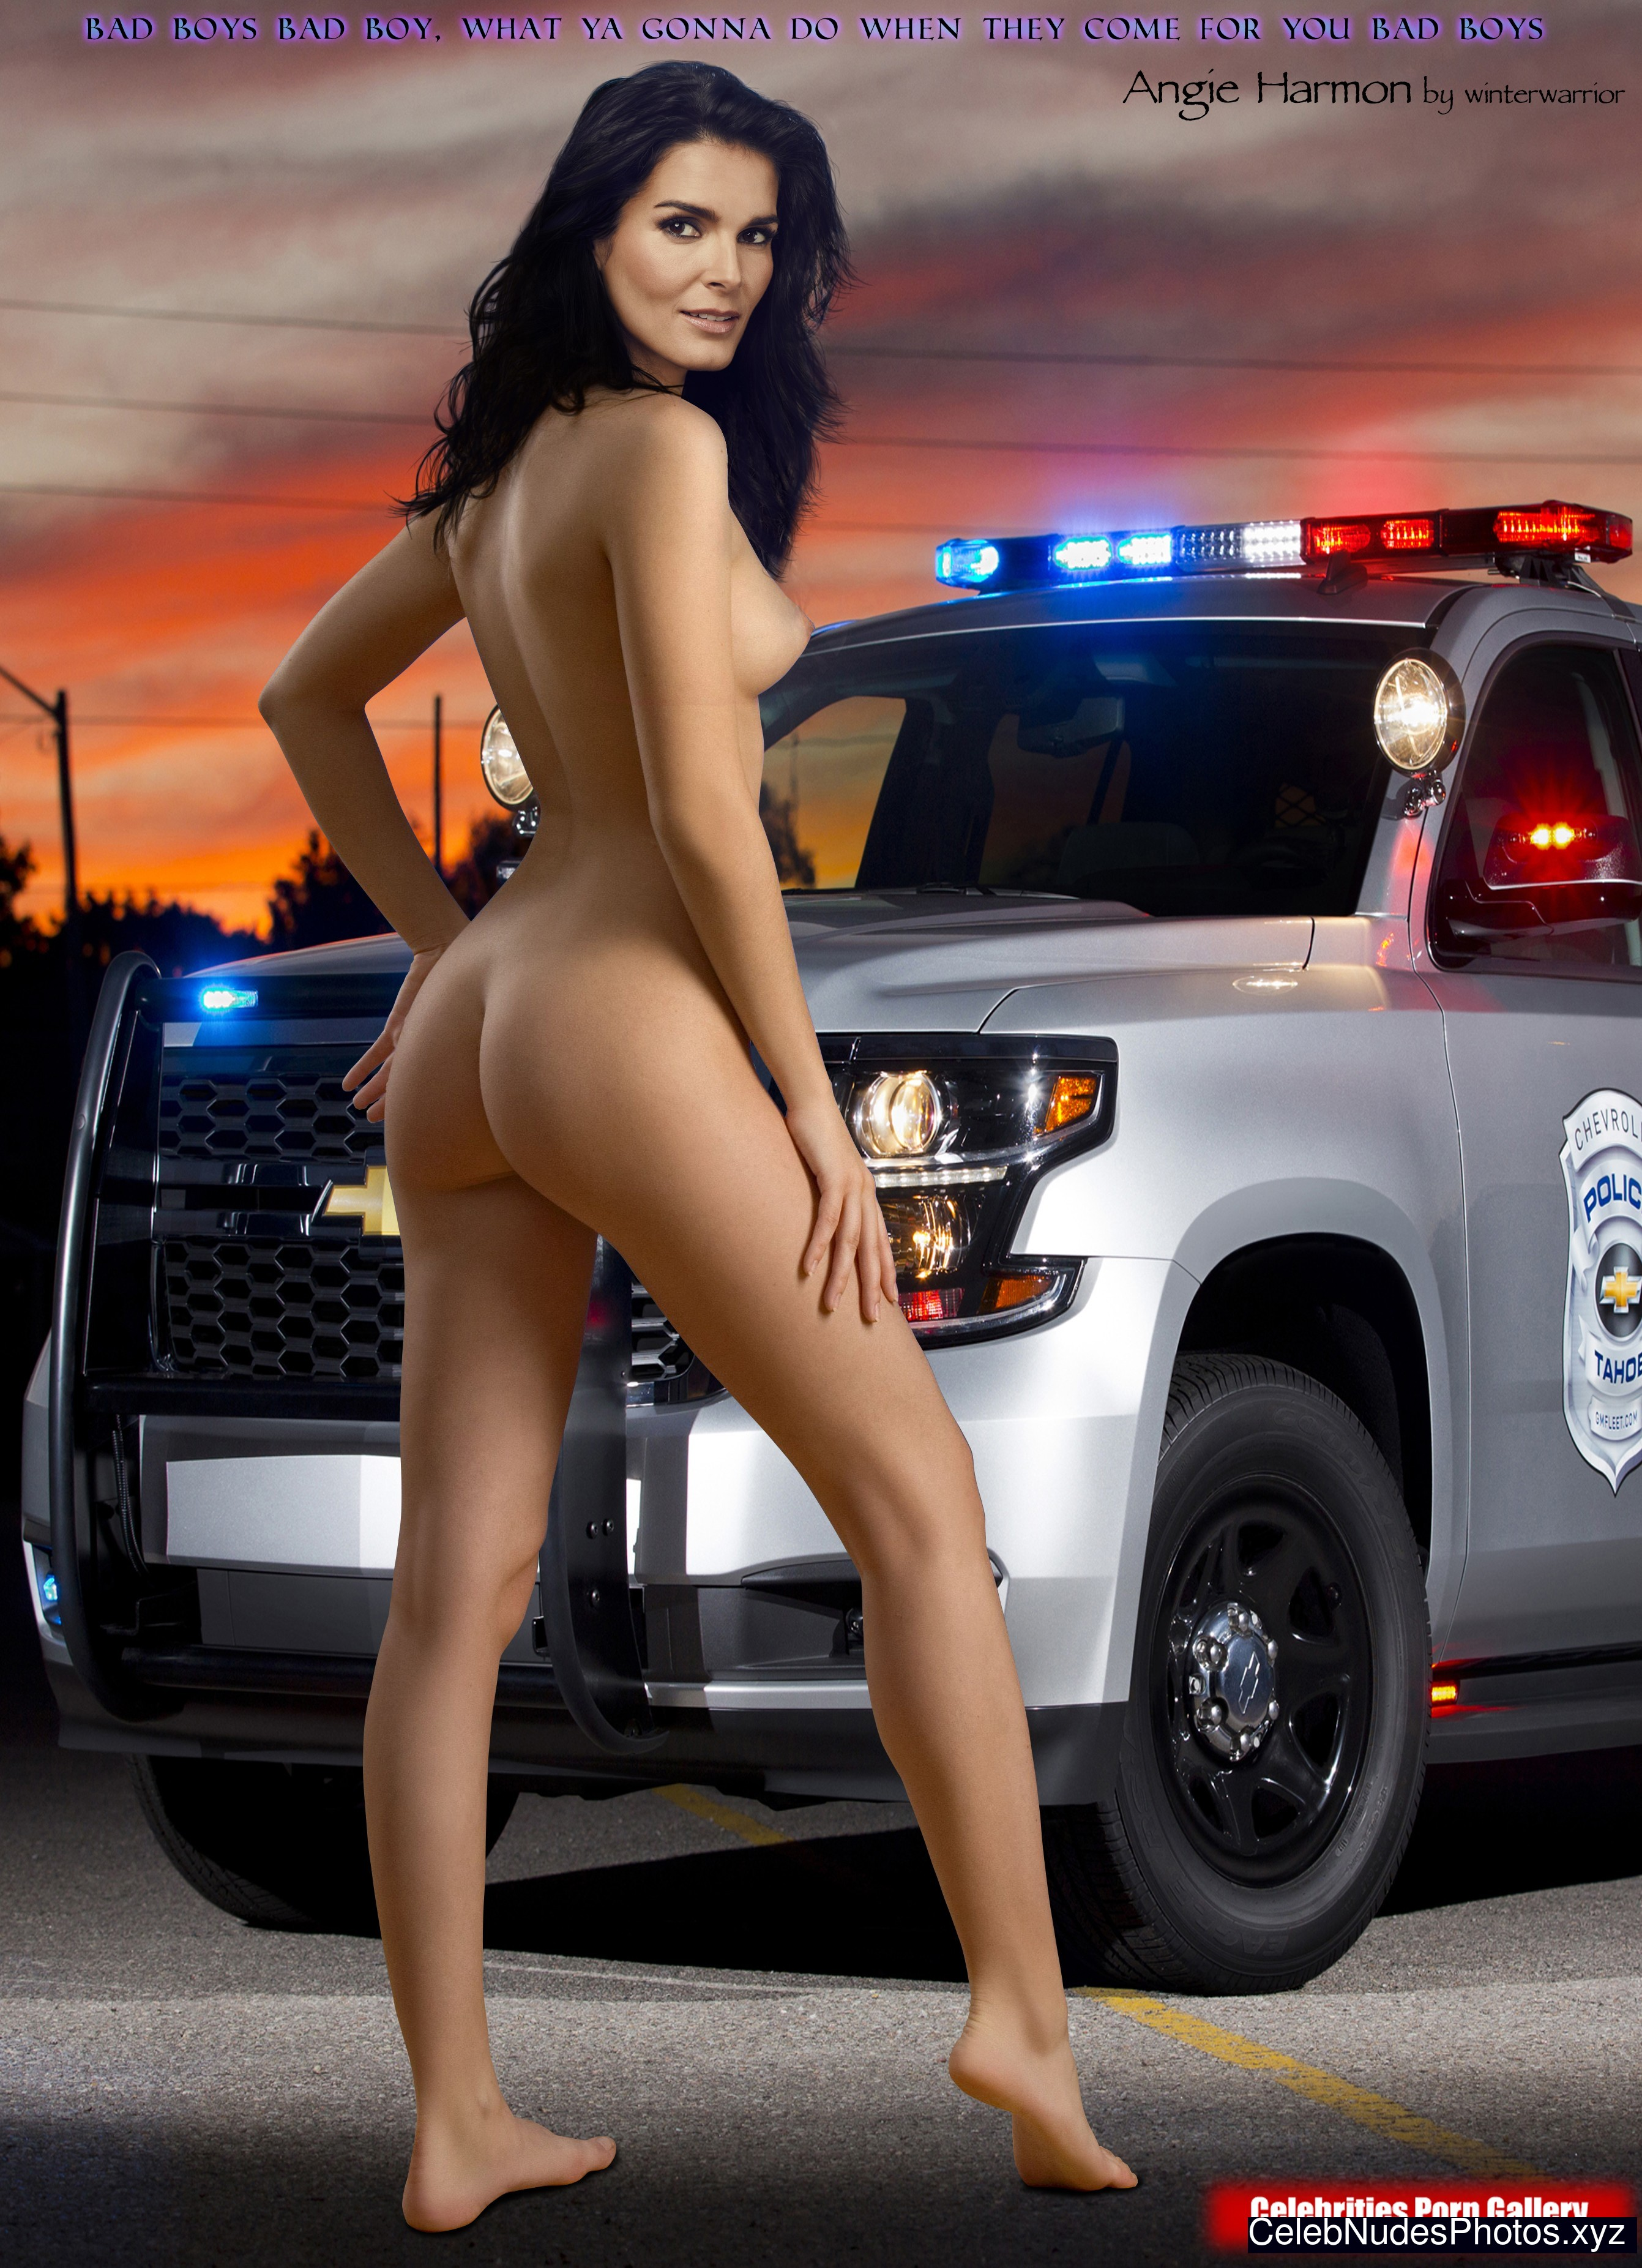 Angie Harmon nude celebrity pictures